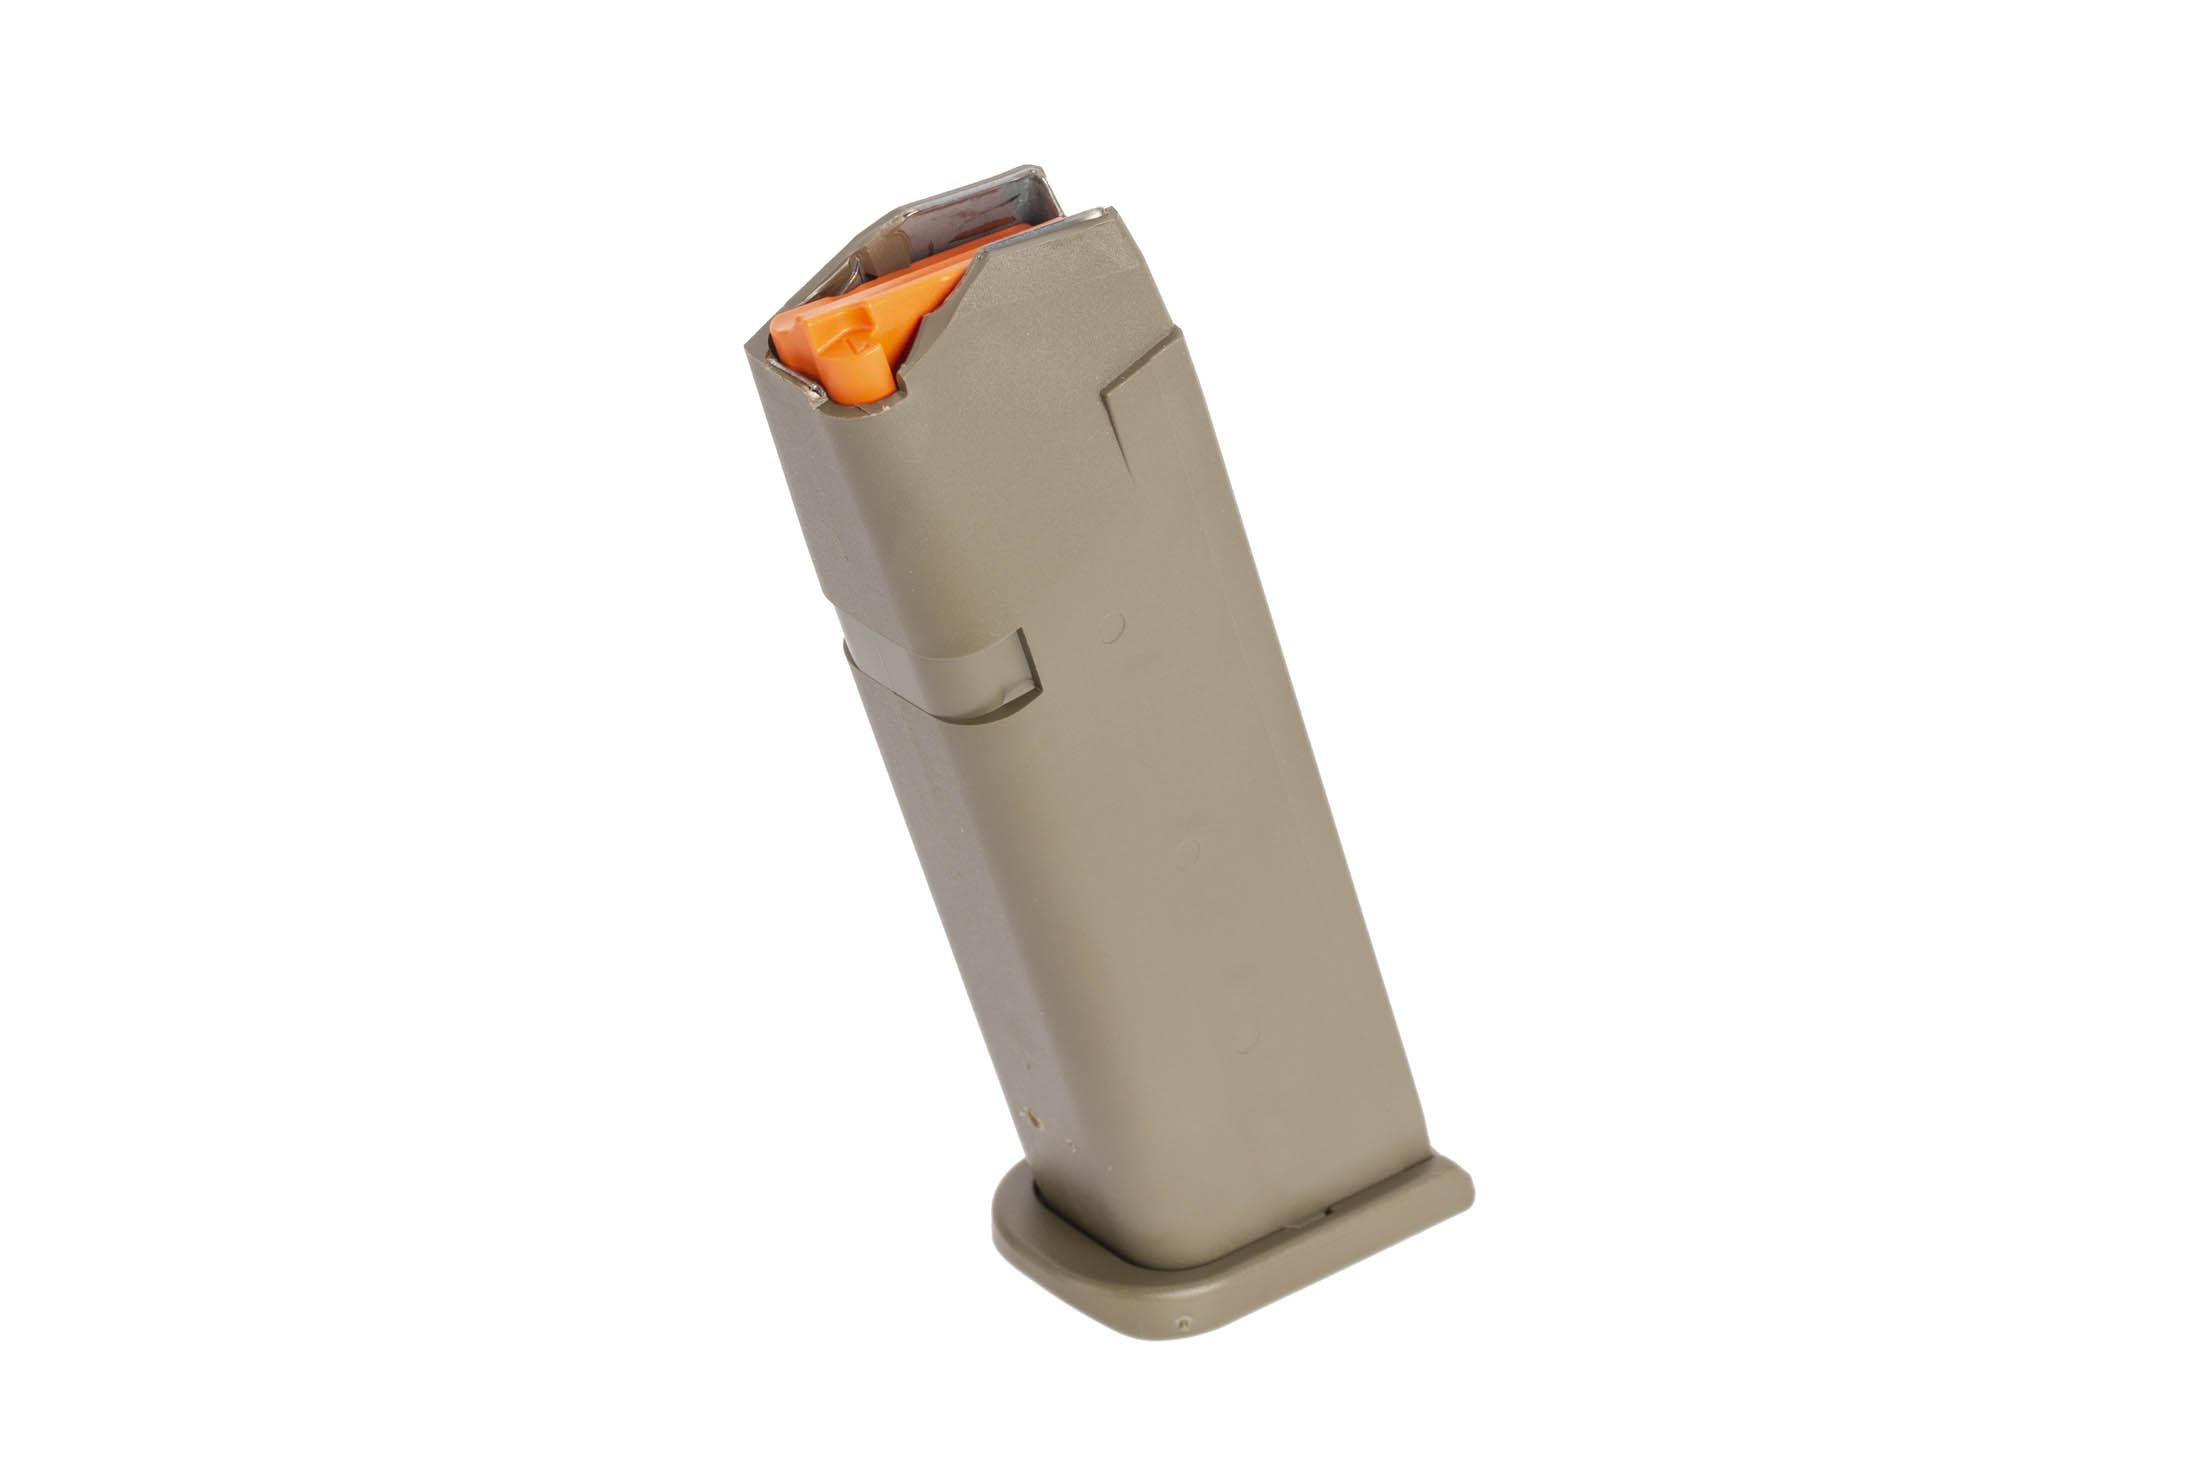 Glock odg G17 Gen 5 17-round 9mm steel reinforced polymer magazine with high visibility follower and ambi mag catch cuts